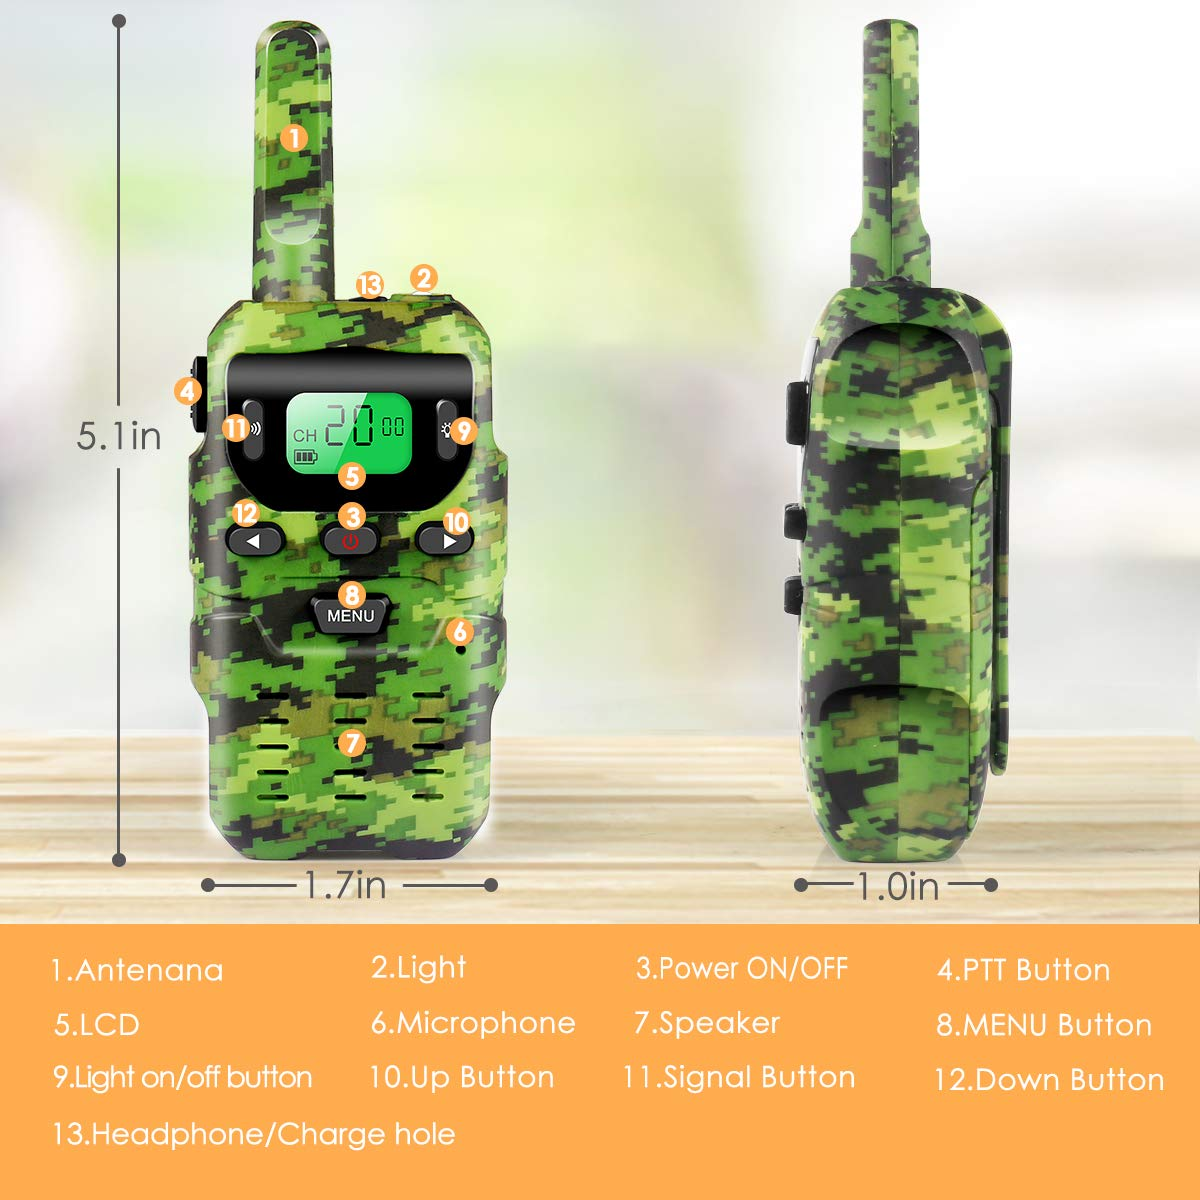 UOKOO Walkie Talkies for Kids, Toys for 3-12 Year Old Boys 22 Channel 3 Mile Long Range Kids Toys and Kids Walkie Talkies, and Top Toys for for 3 4 5 6 7 8 9 Year Old Boy and Girls by UOKOO (Image #2)